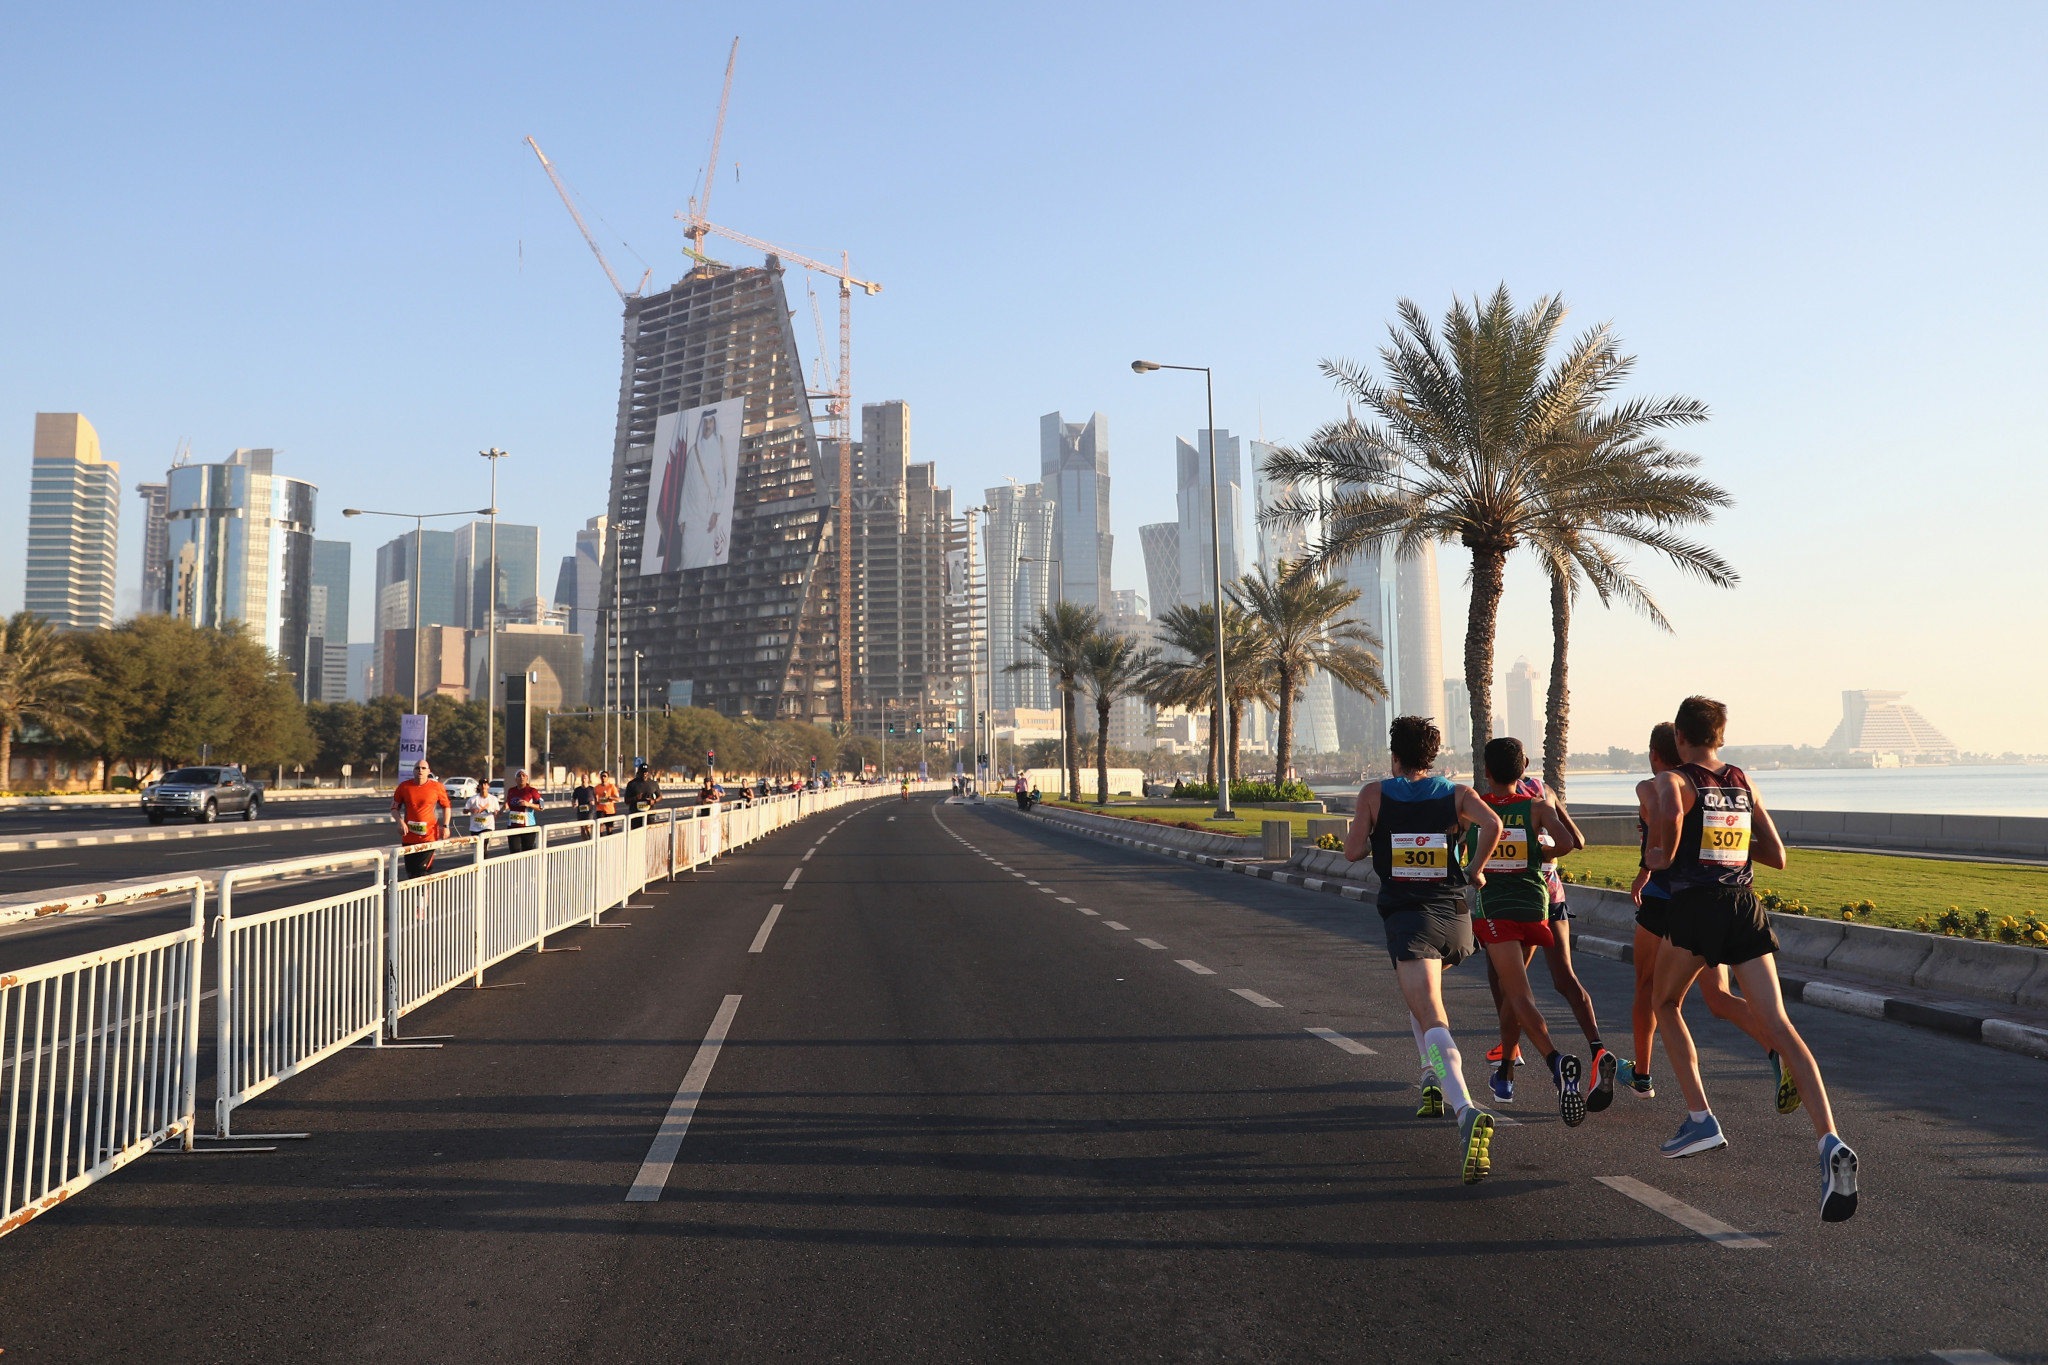 Doha's Corniche, where the IAAF World Championship marathons will soon be held. Hot ©Getty Images